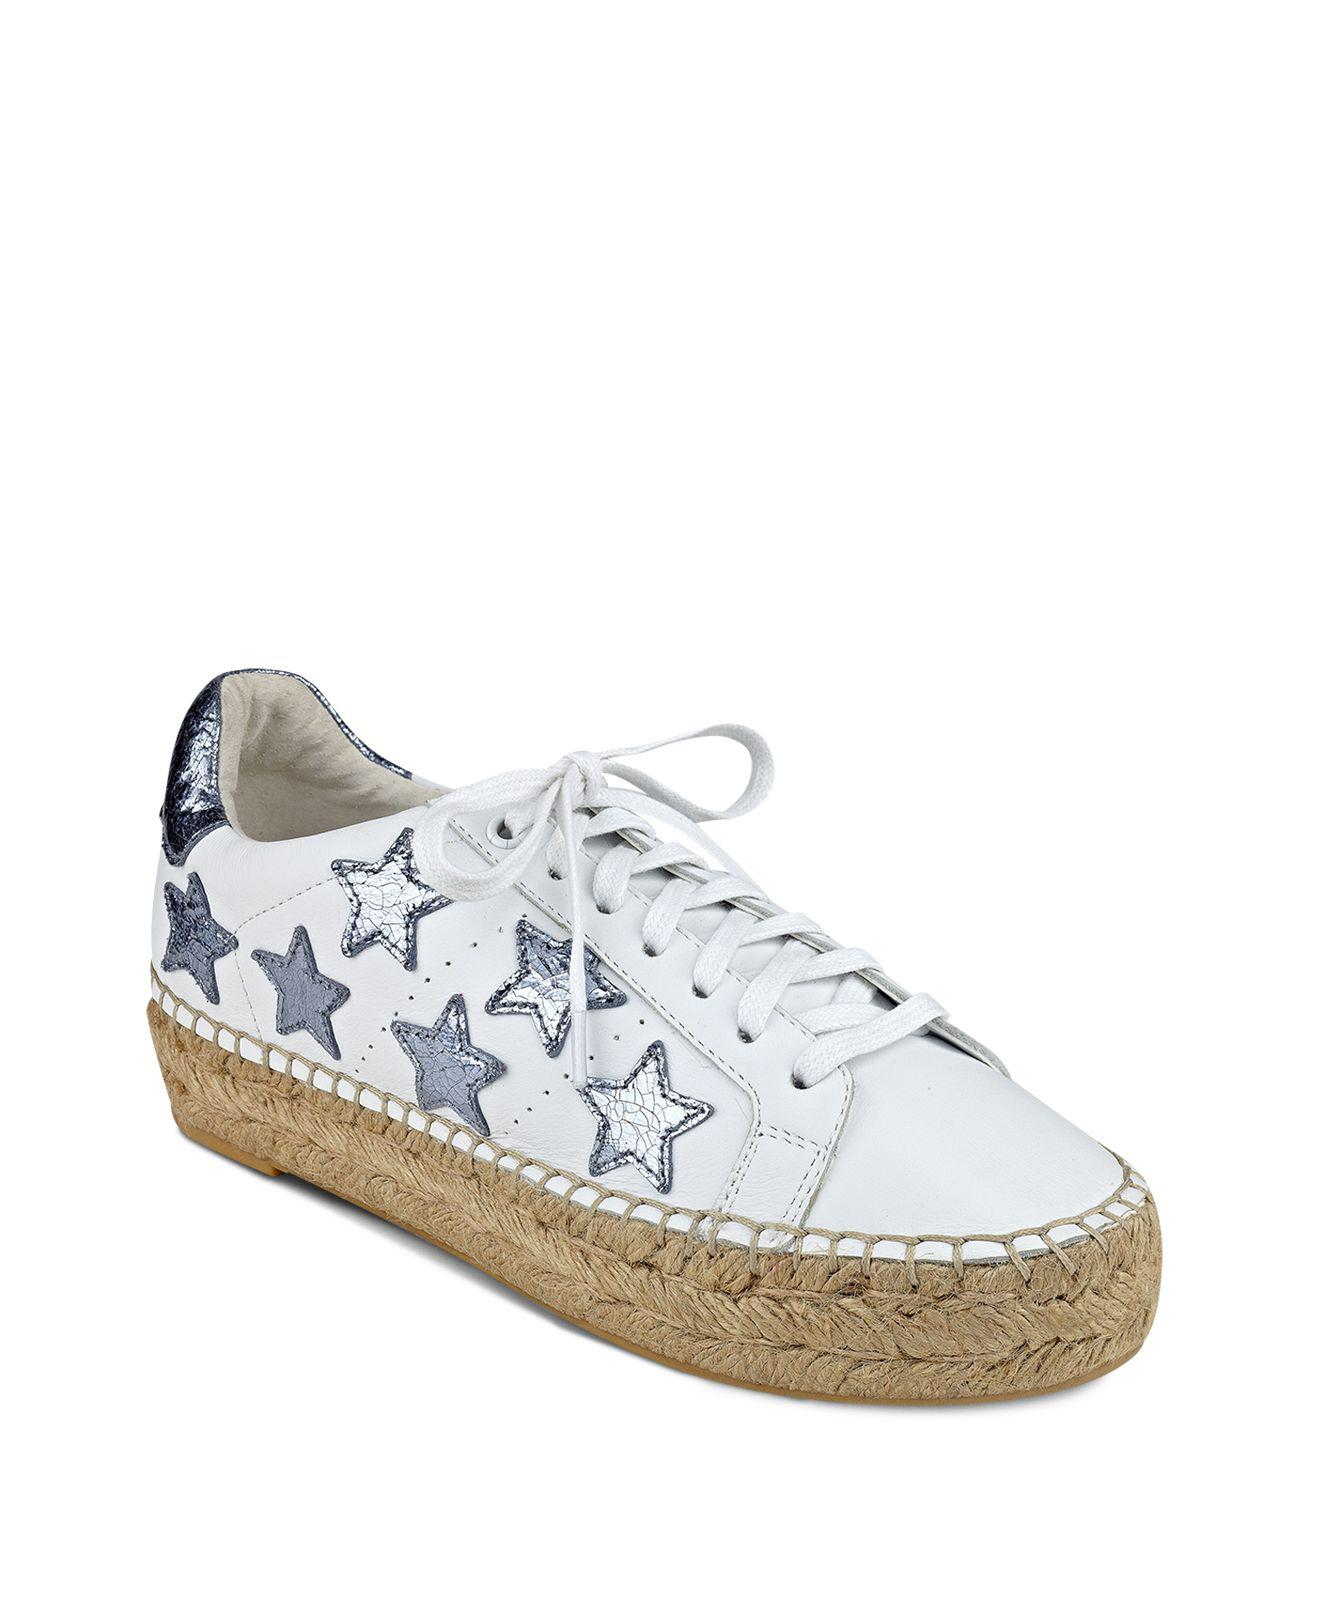 Womens Fisher 7 Fashion Marc blu Us 9 Sneakers Marcia 5 Bianco Multi Pelle qEdwxwU7